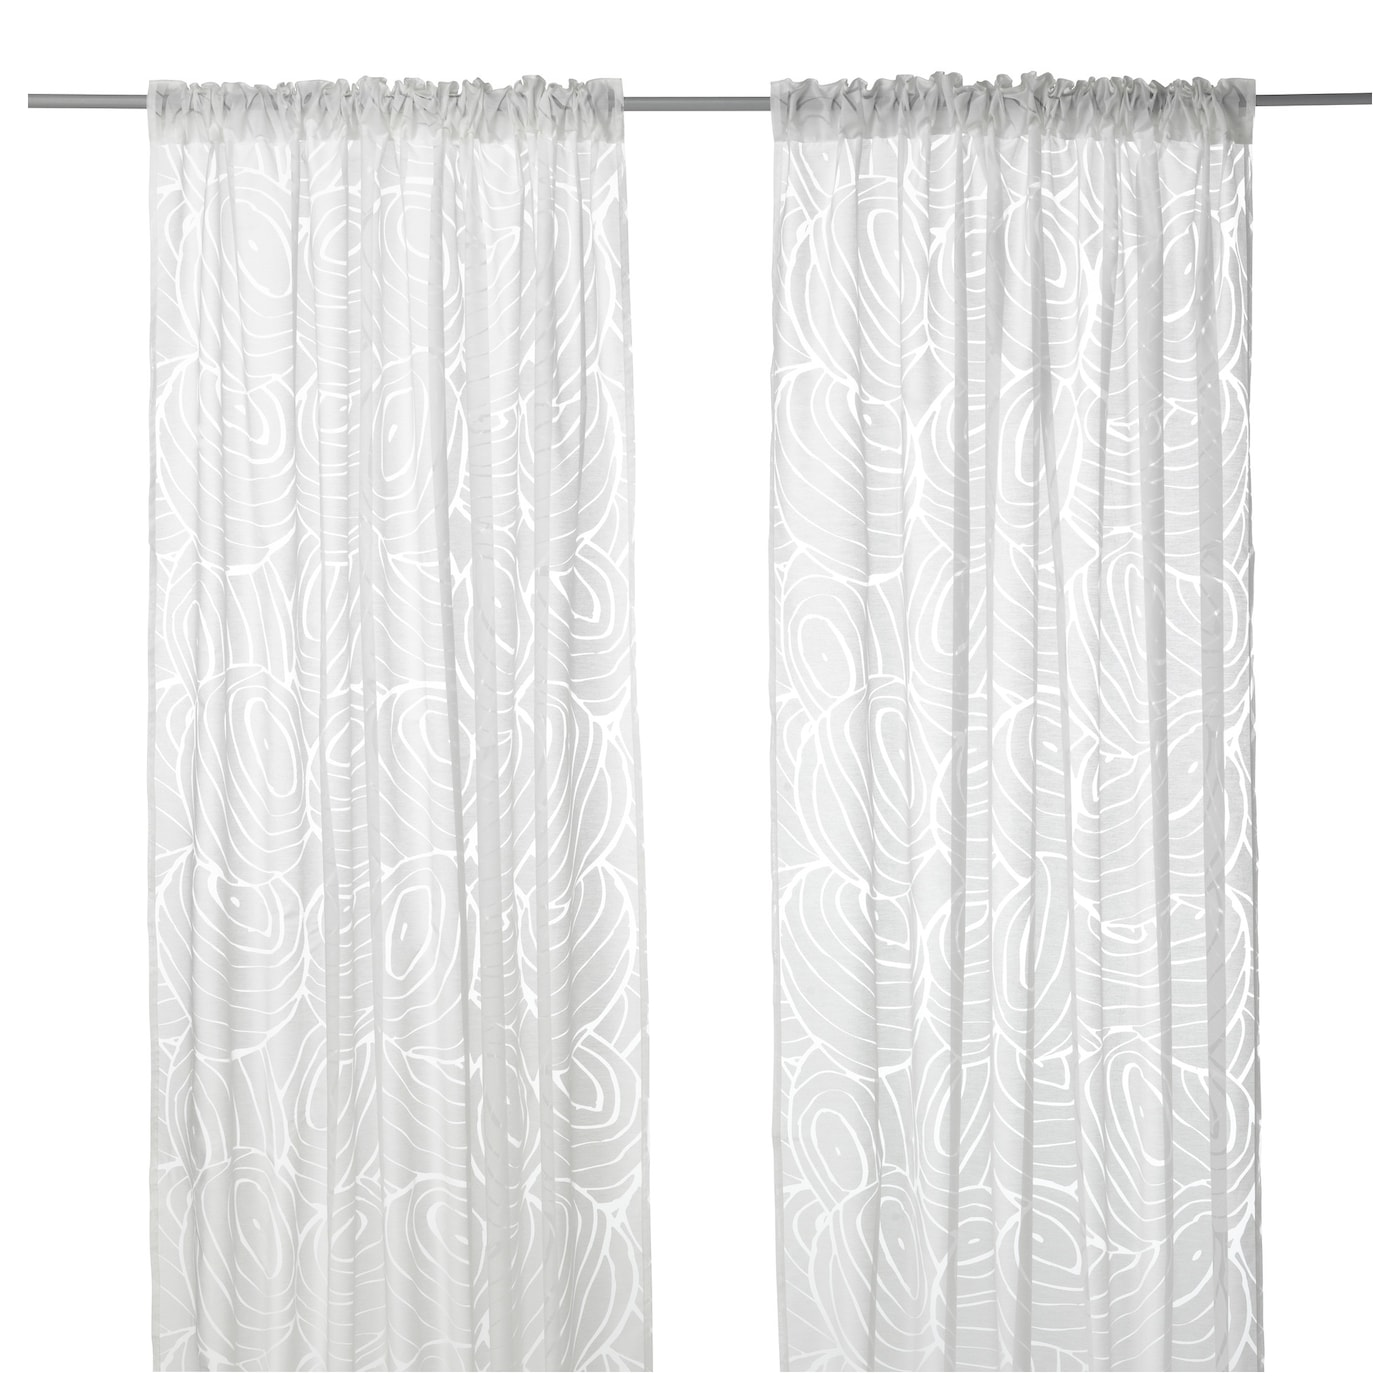 Nordis sheer curtains 1 pair white 145x250 cm ikea for Cortinas transparentes